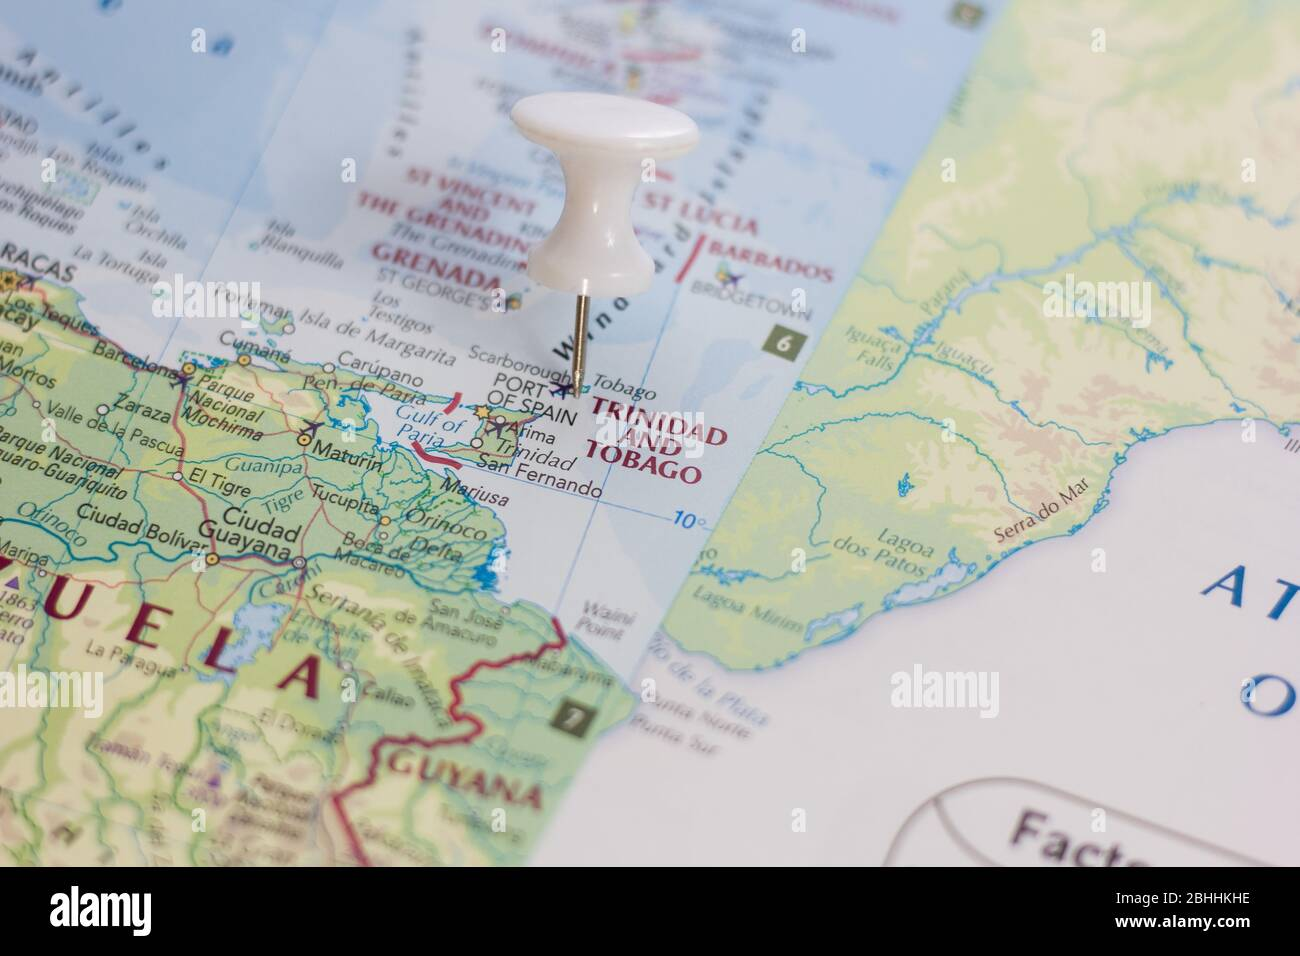 Trinidad And Tobago On The Map Of The World Or Atlas Stock Photo Alamy